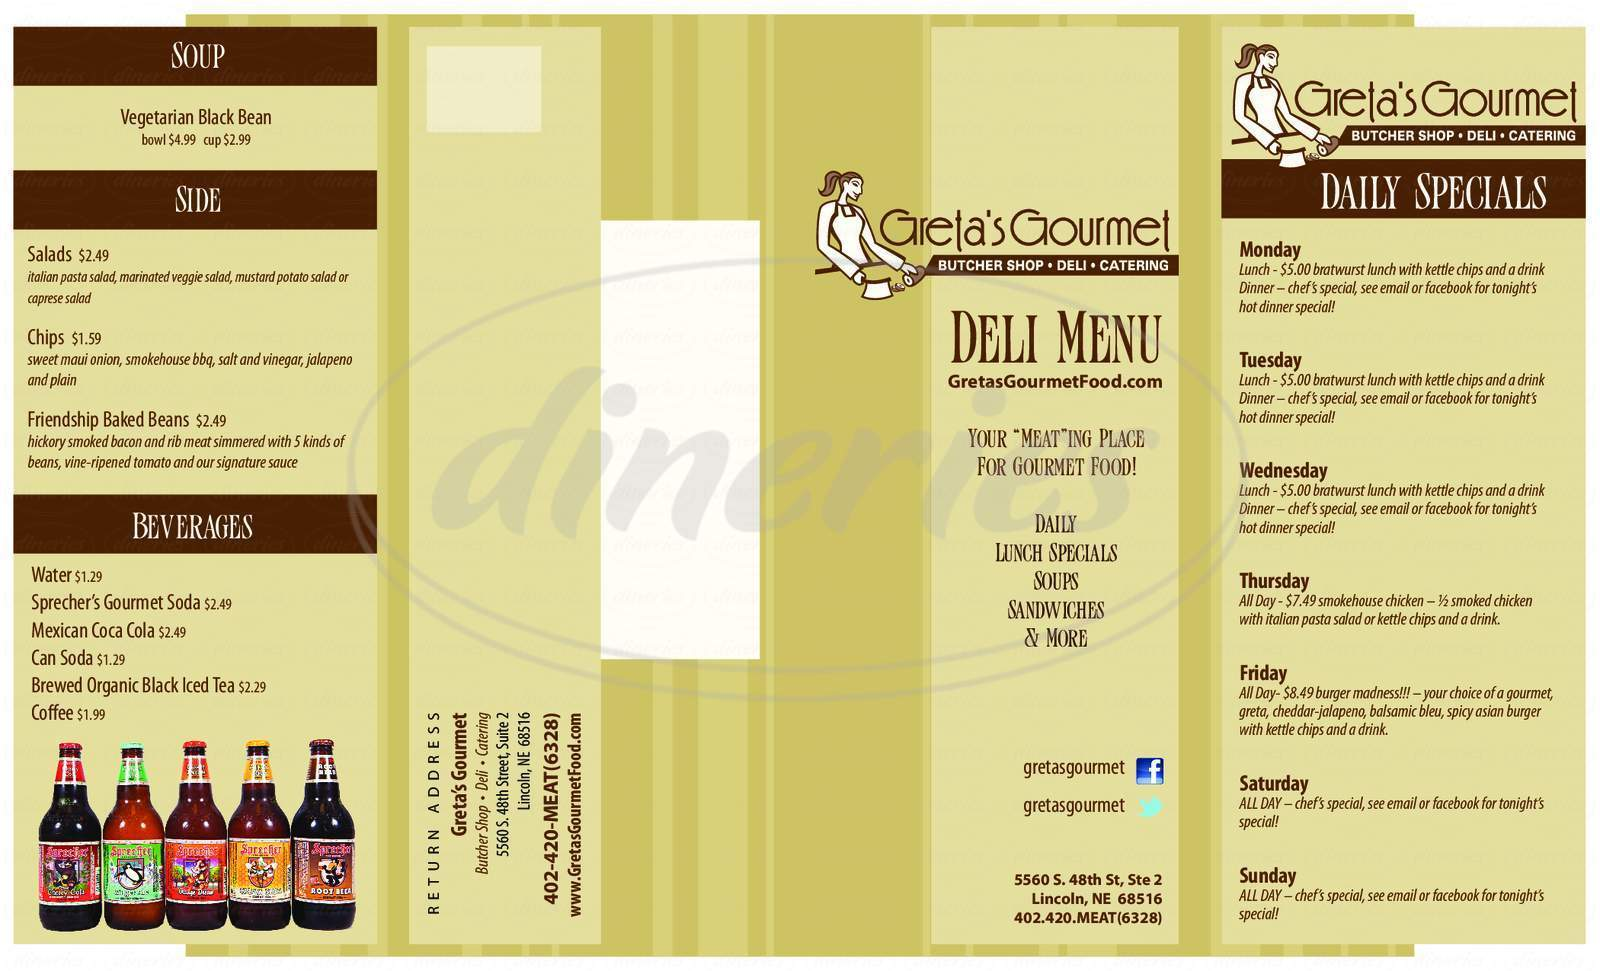 menu for Greta's Gourmet Butcher Shop, Deli, Catering